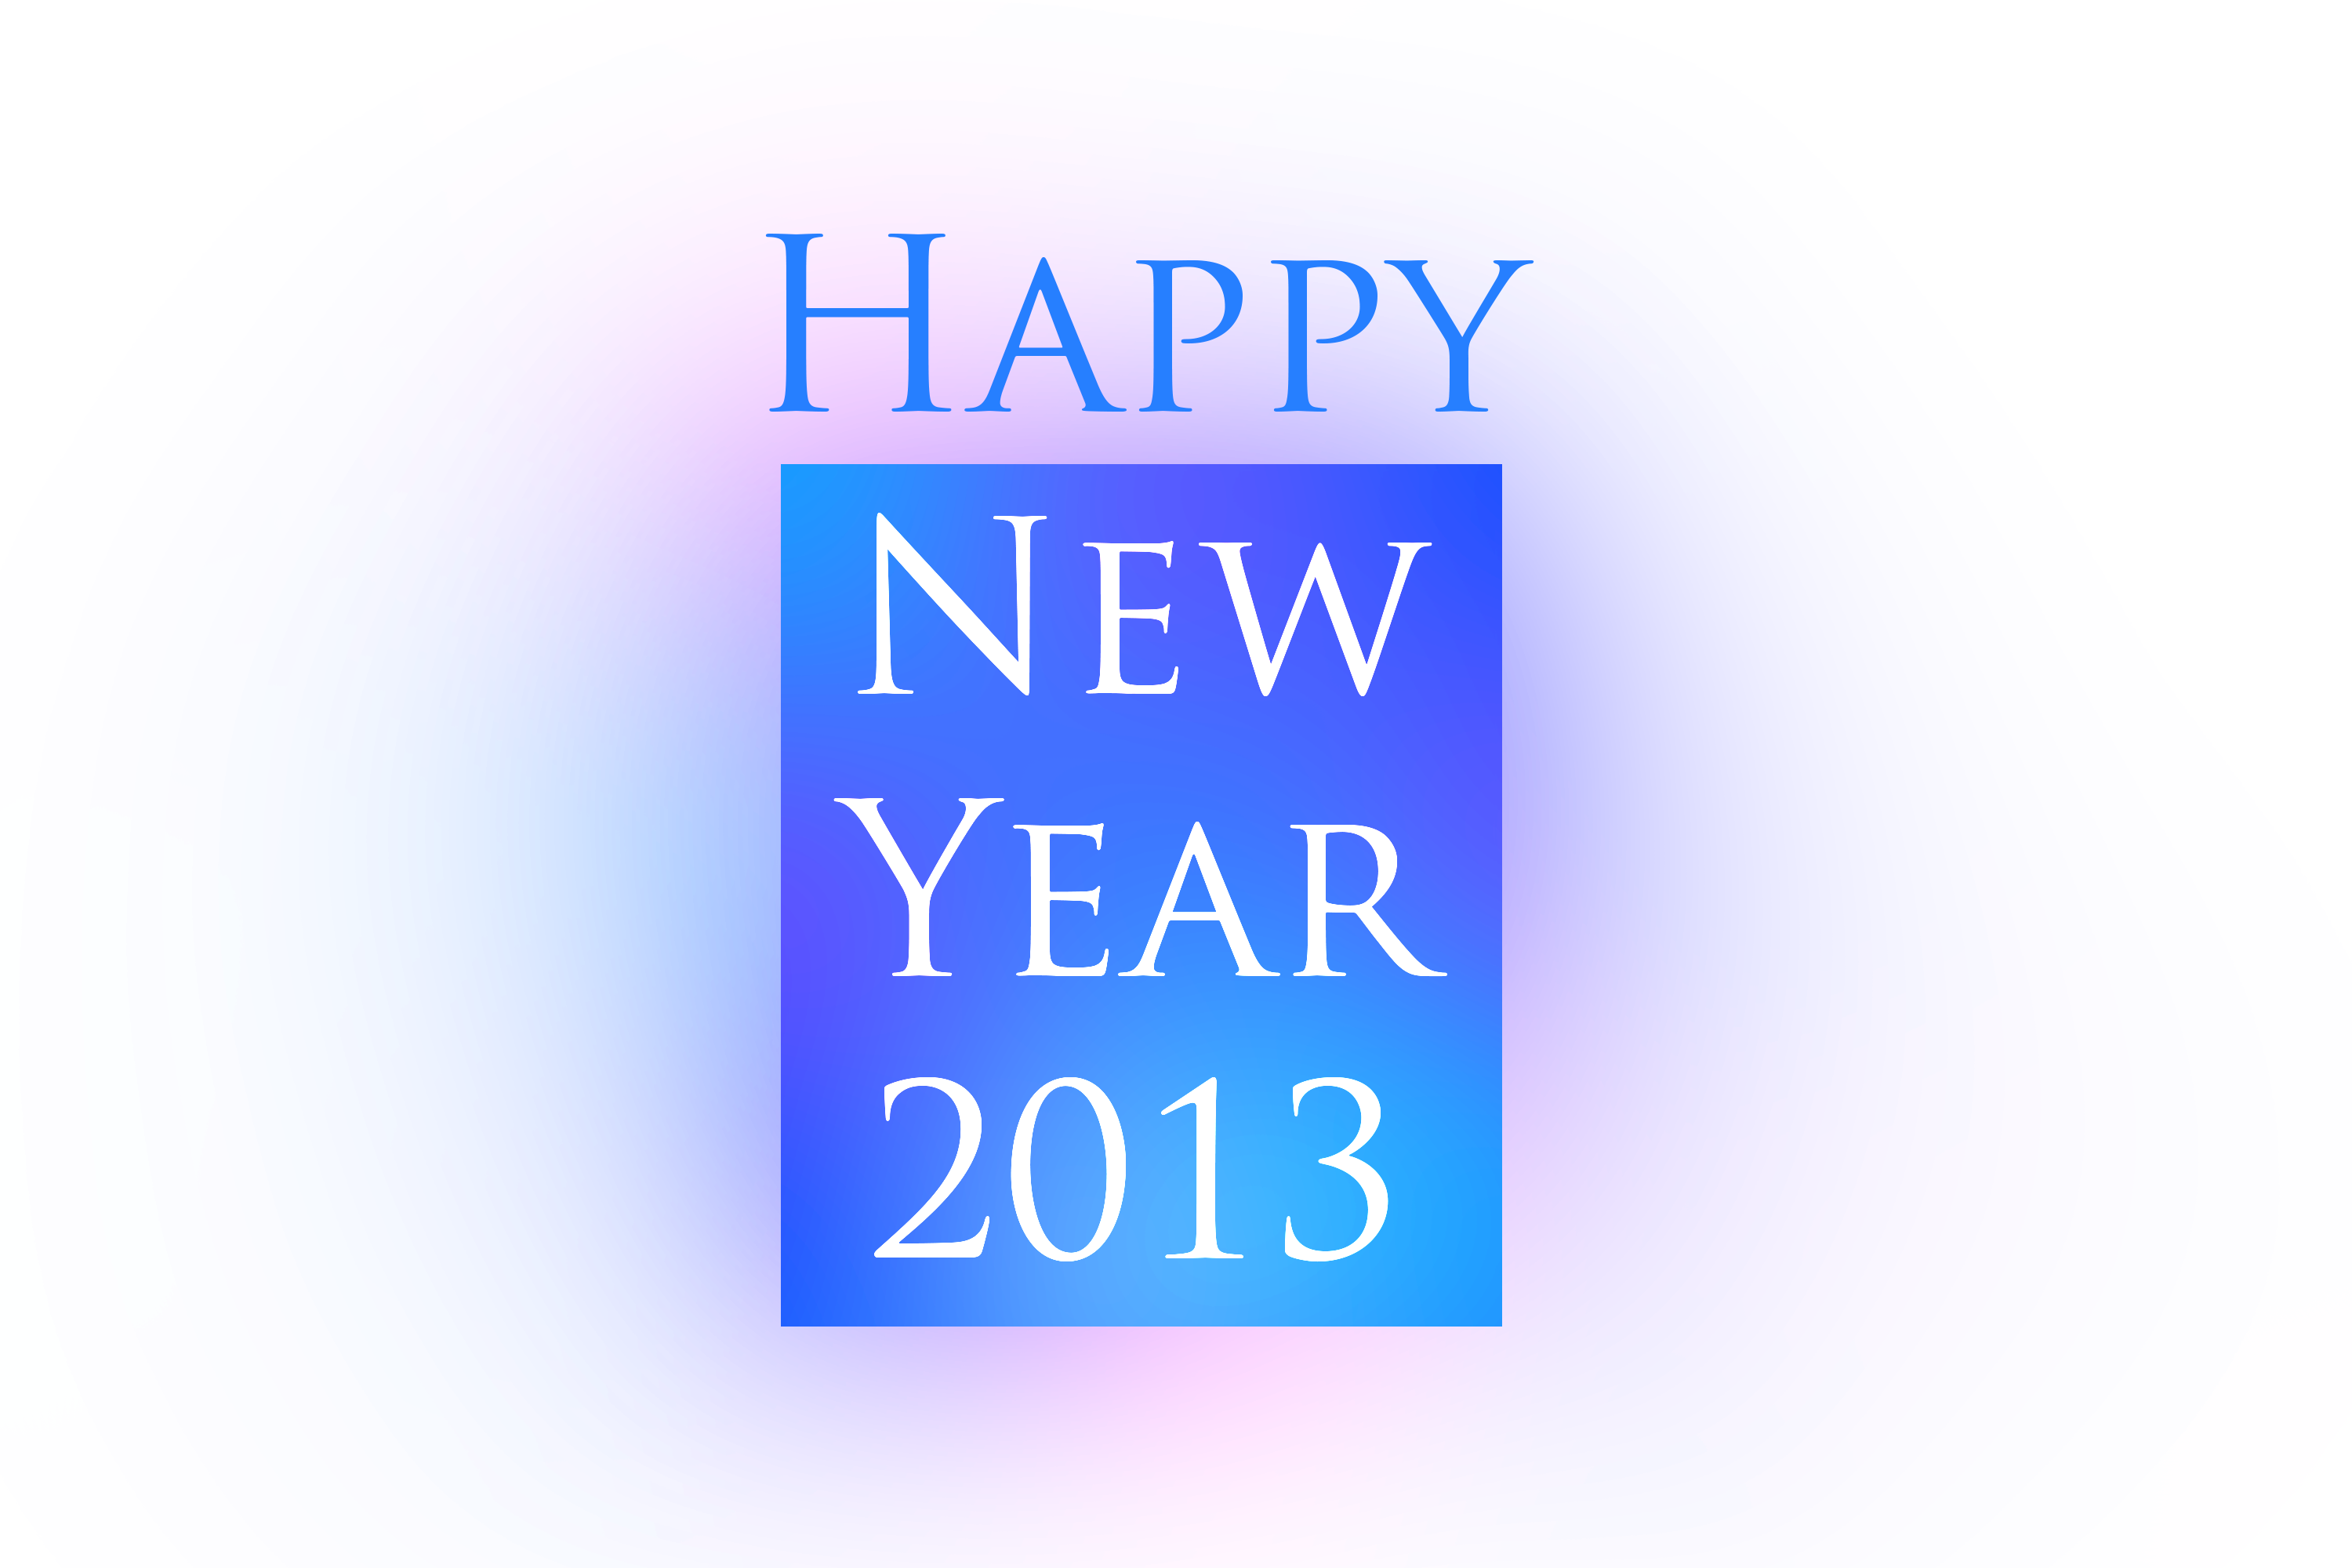 Happy New Year 2013 by Yerevan-Scapes